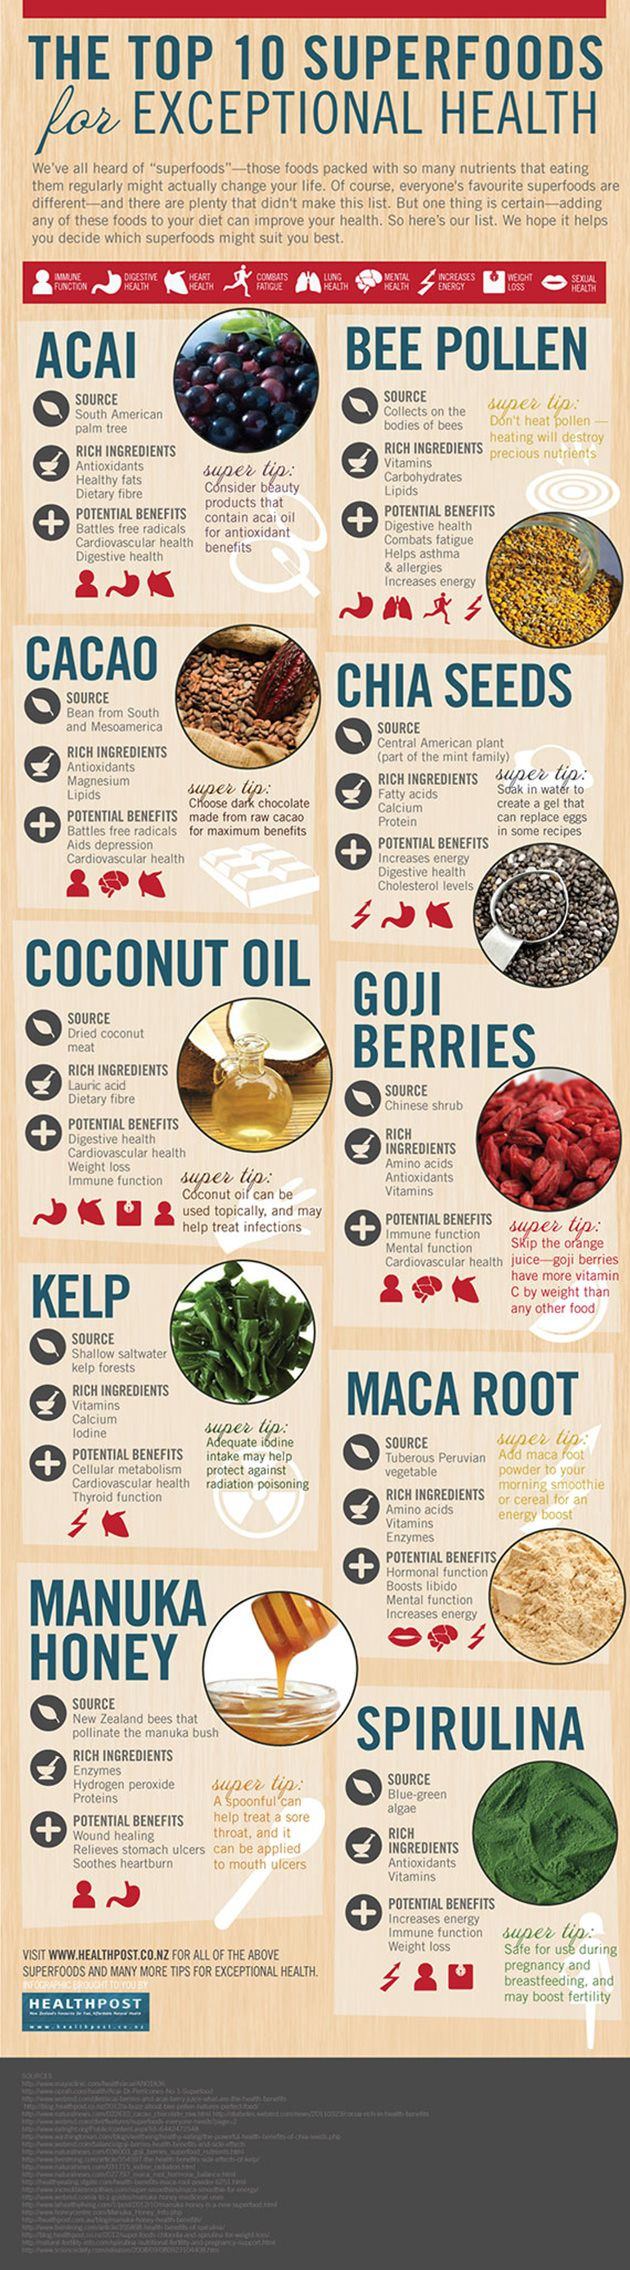 The Top 10 Superfoods for Exceptional Health Infographic | Health Blog